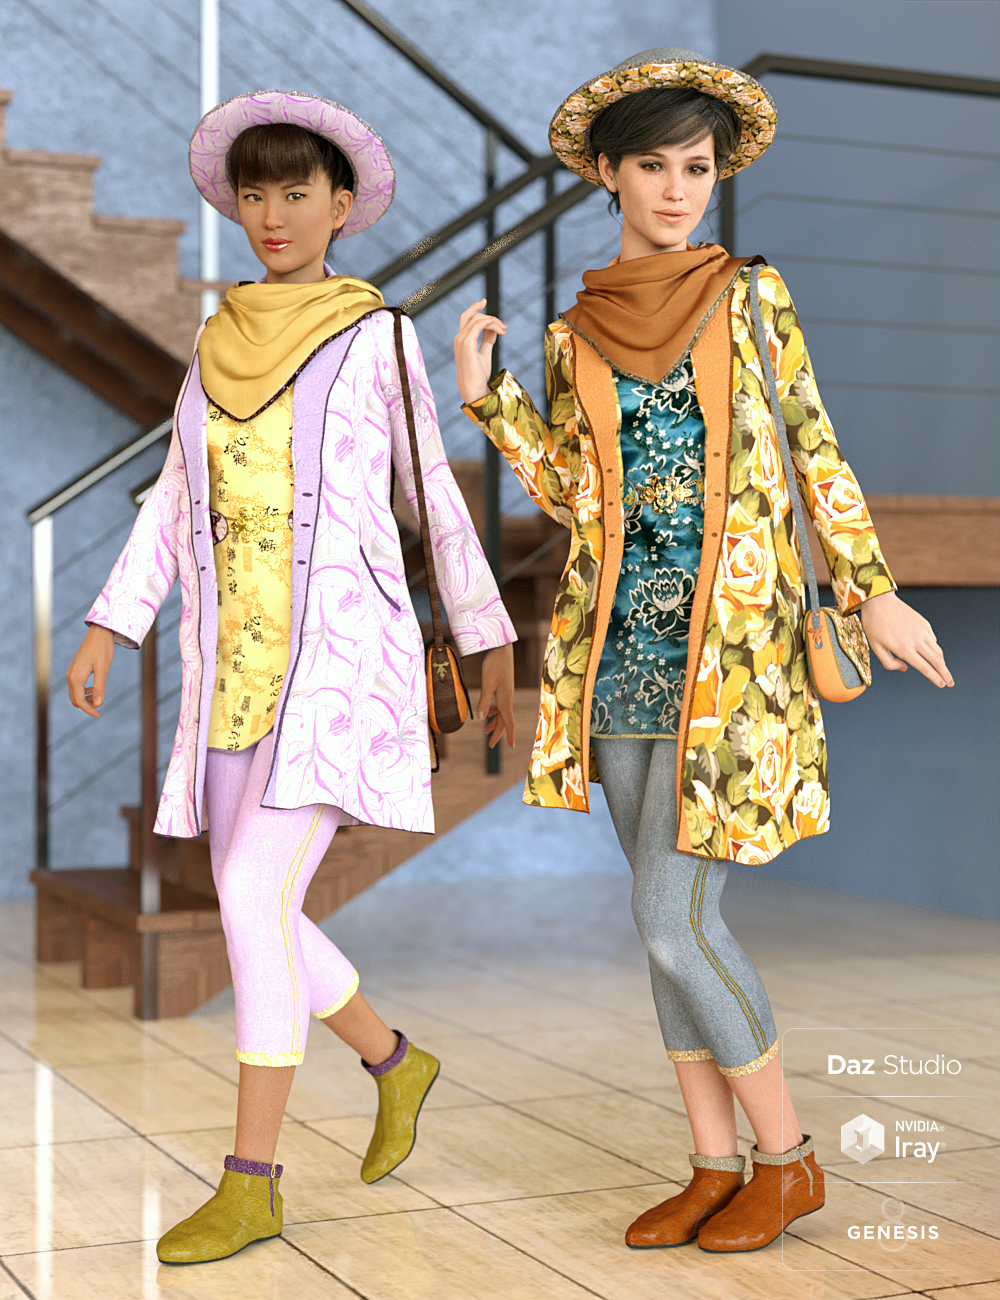 Summer Accents by: Dark-Elf, 3D Models by Daz 3D